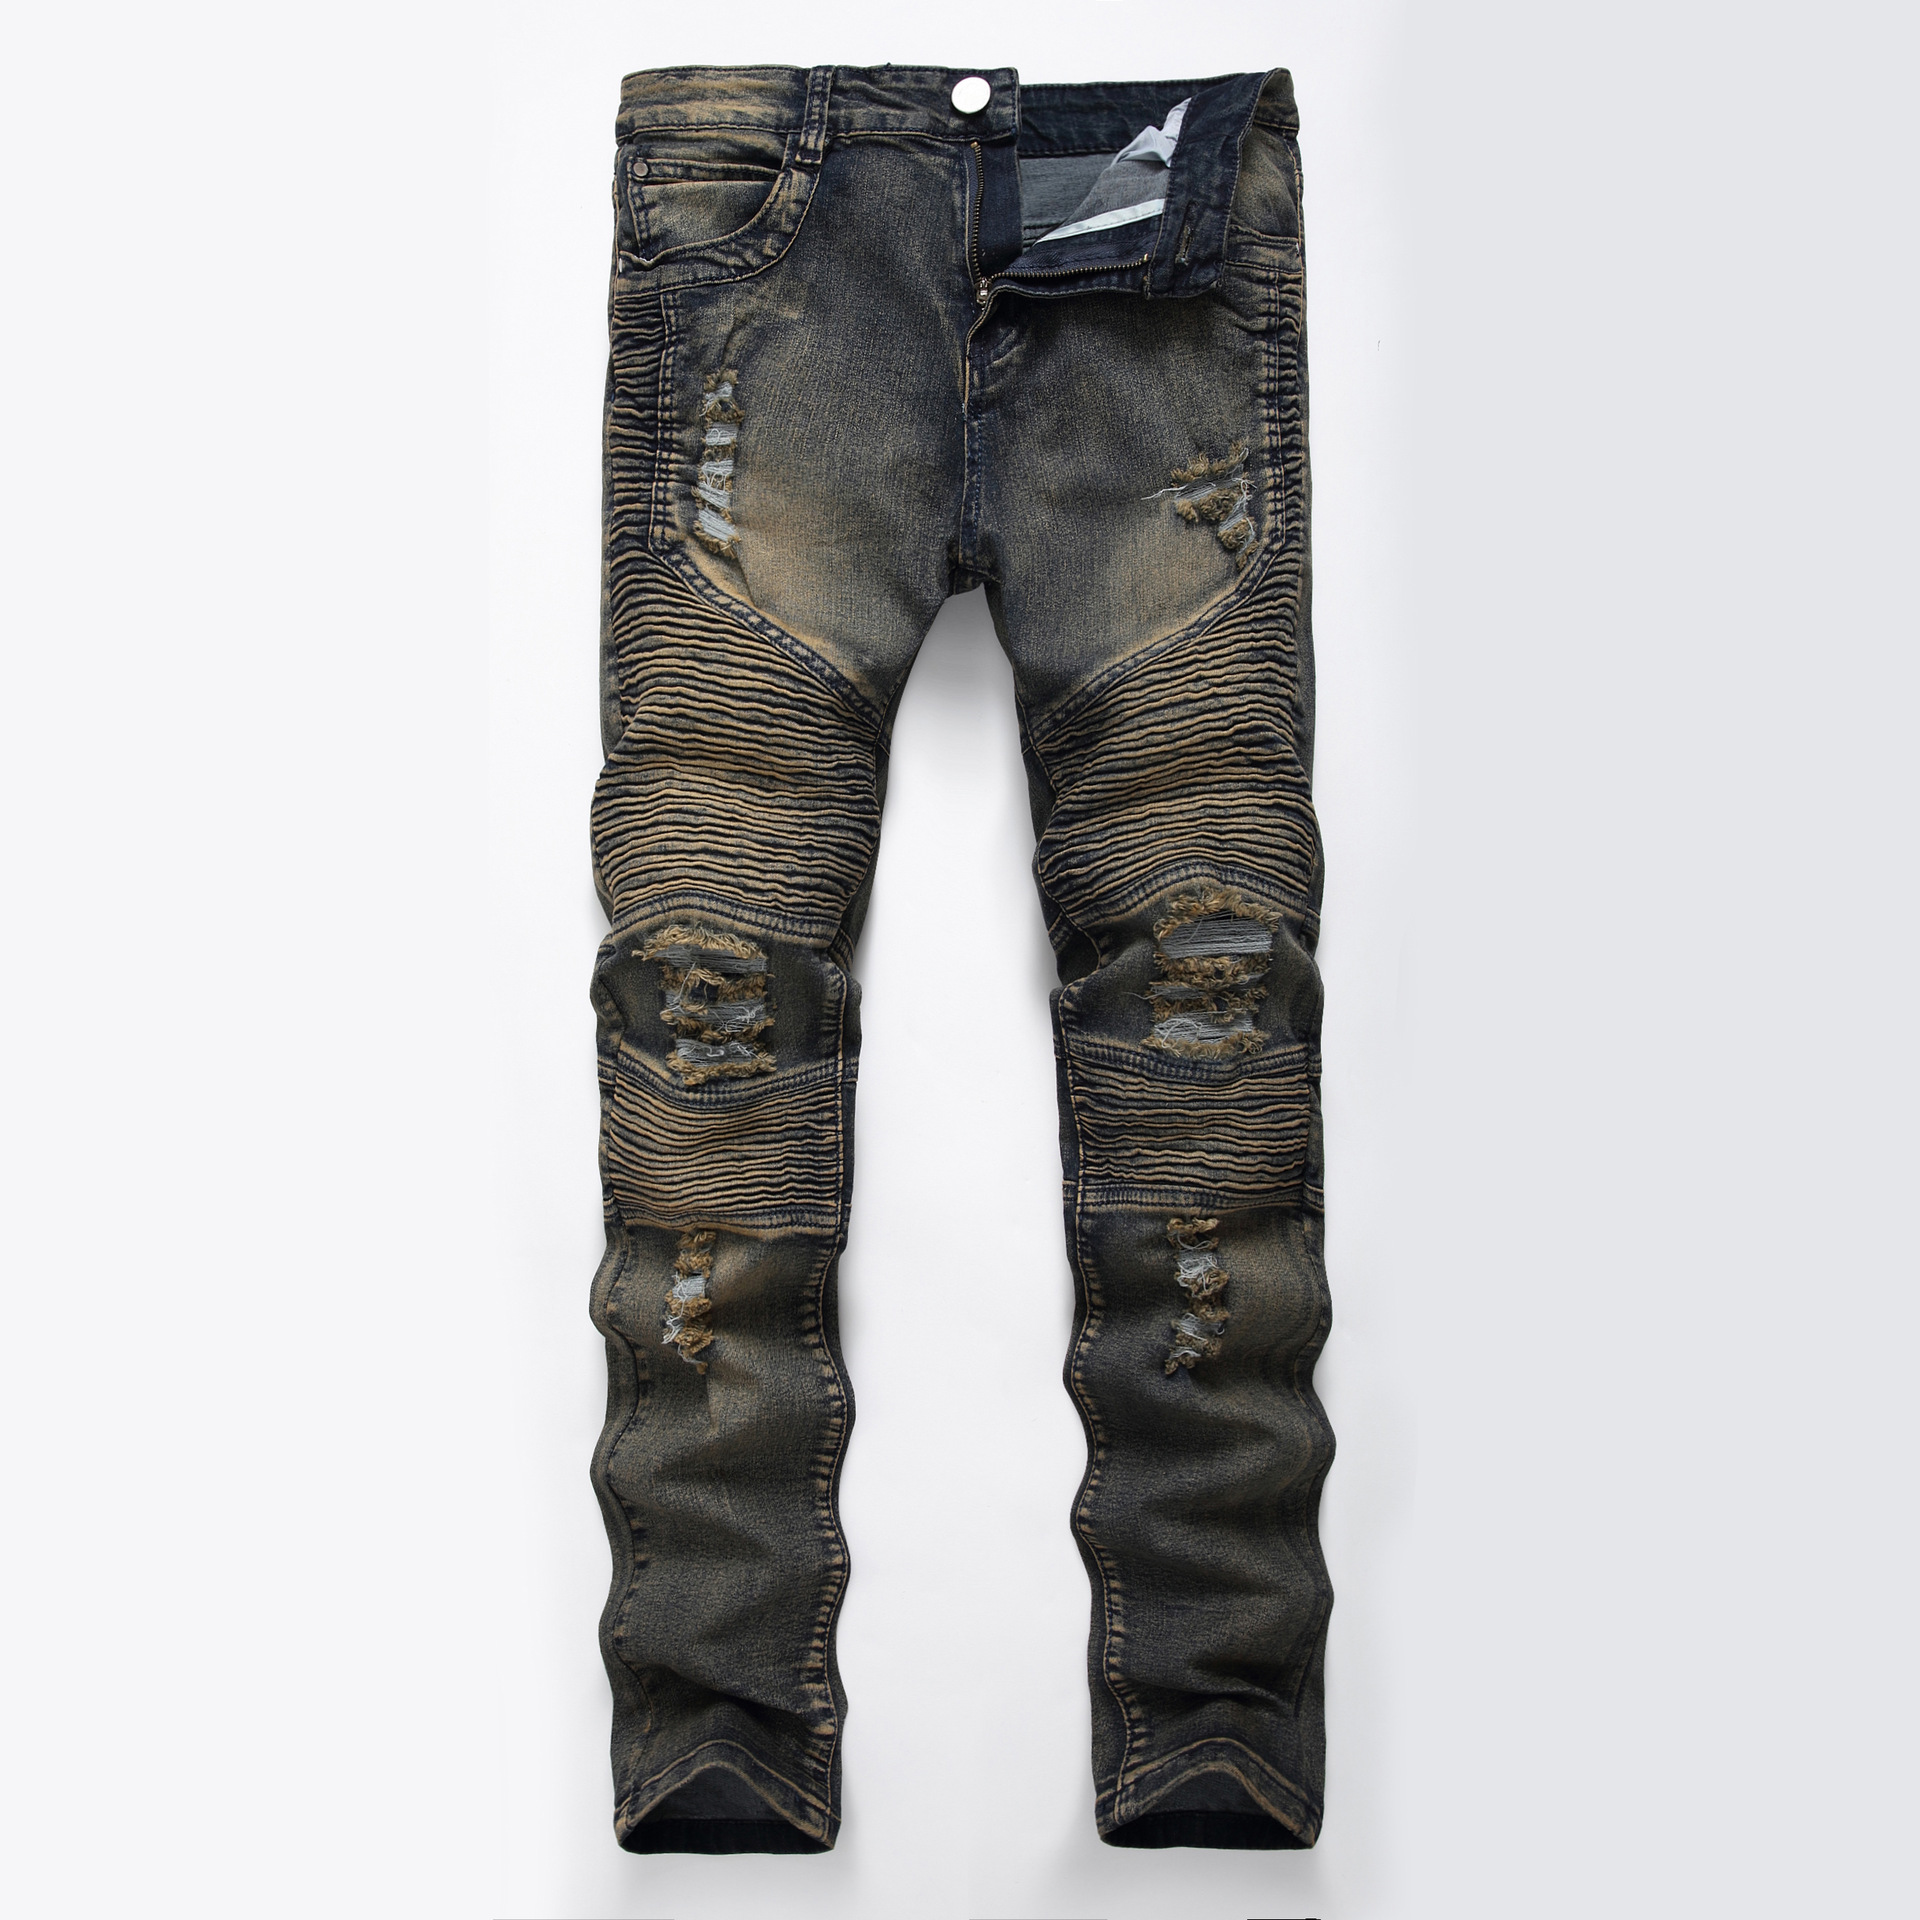 Sulee 2018 New Arrival Men Designer Black Ripped Jeans Men Casual Male Biker Jean Skinny Motorcycle High Quality Denim Joggers Jeans